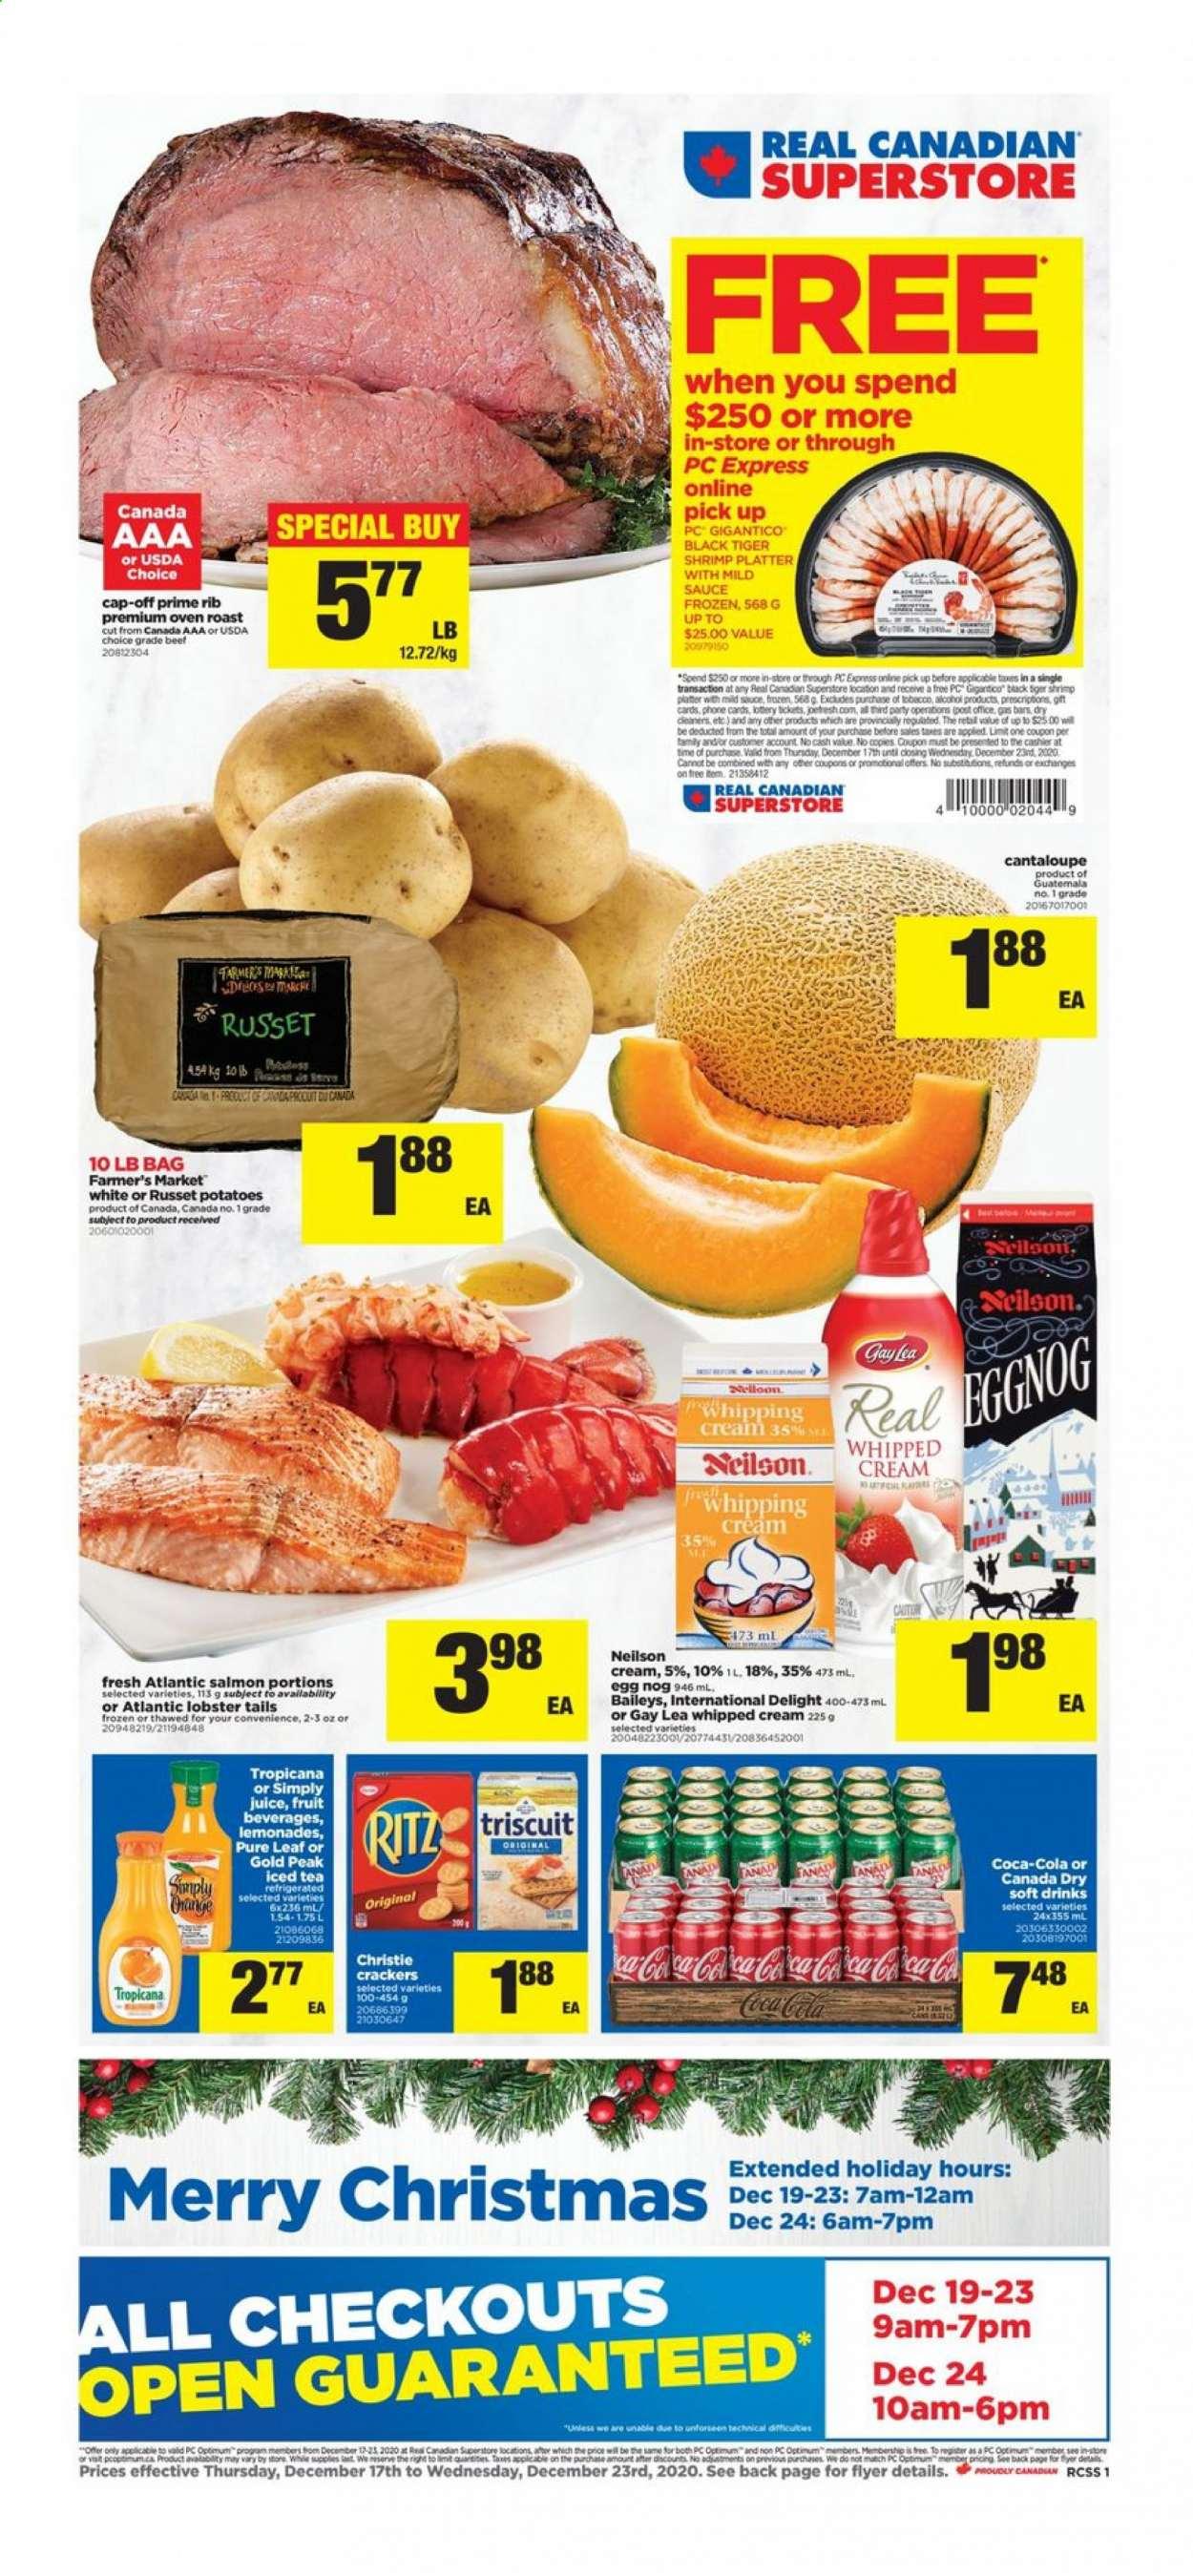 Real Canadian Superstore Flyer - December 17, 2020 - December 23, 2020 - Sales products - bag, beef meat, Canada Dry, cantaloupe, cap, coca-cola, eggnog, eggs, frozen, lobster, russet potatoes, salmon, tea, whipped cream, potatoes, oven, Baileys, juice, sauce, platter, shrimps, phone. Page 1.